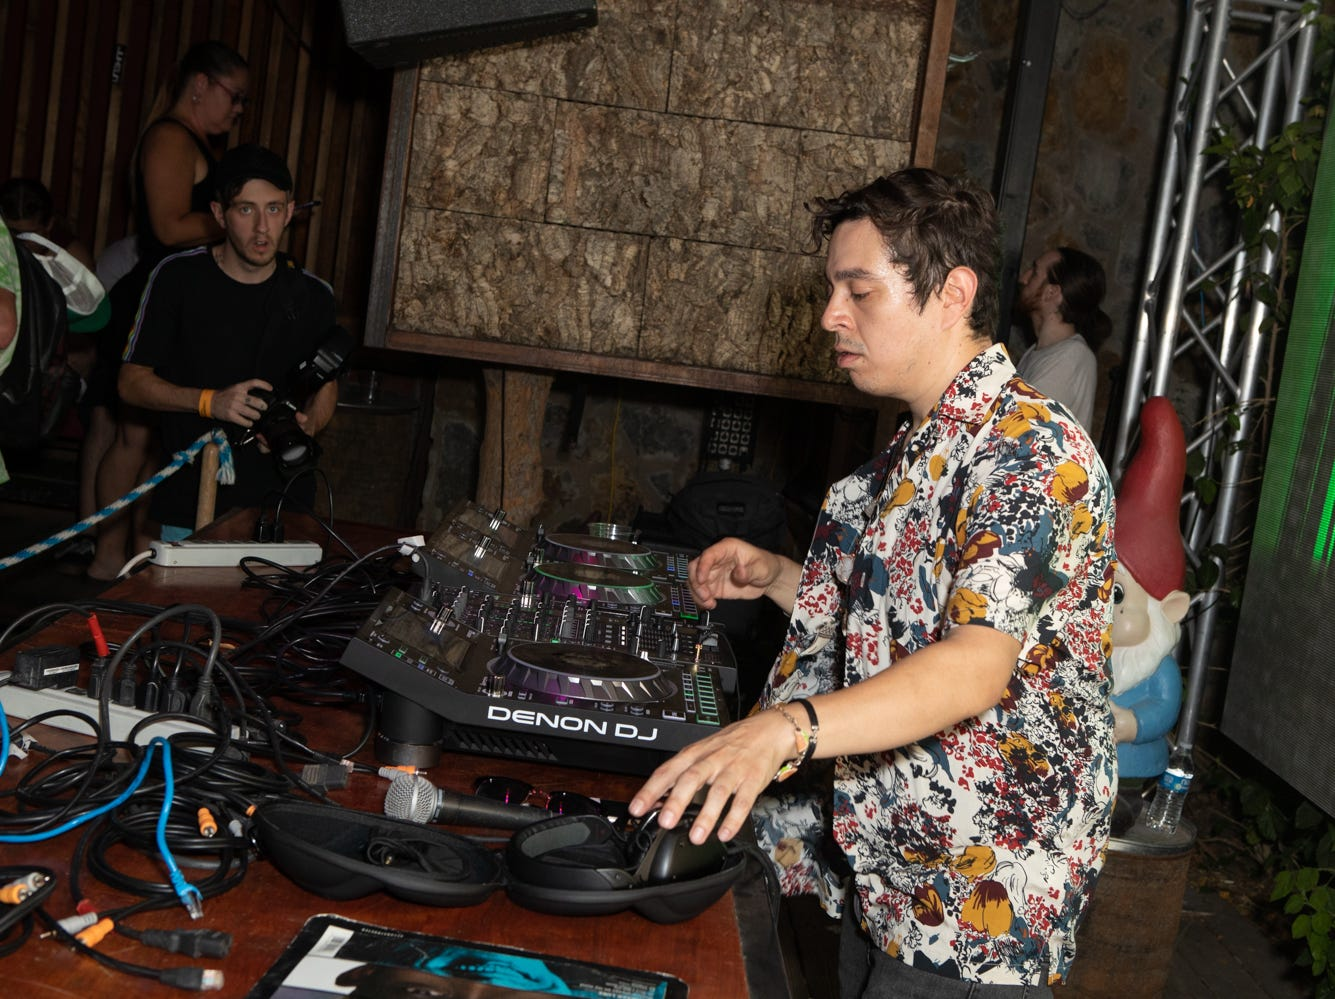 Laidback Luke brought good vibes, beats, and techno to Shady Park on Sunday, Sept. 9, 2018 in Tempe.